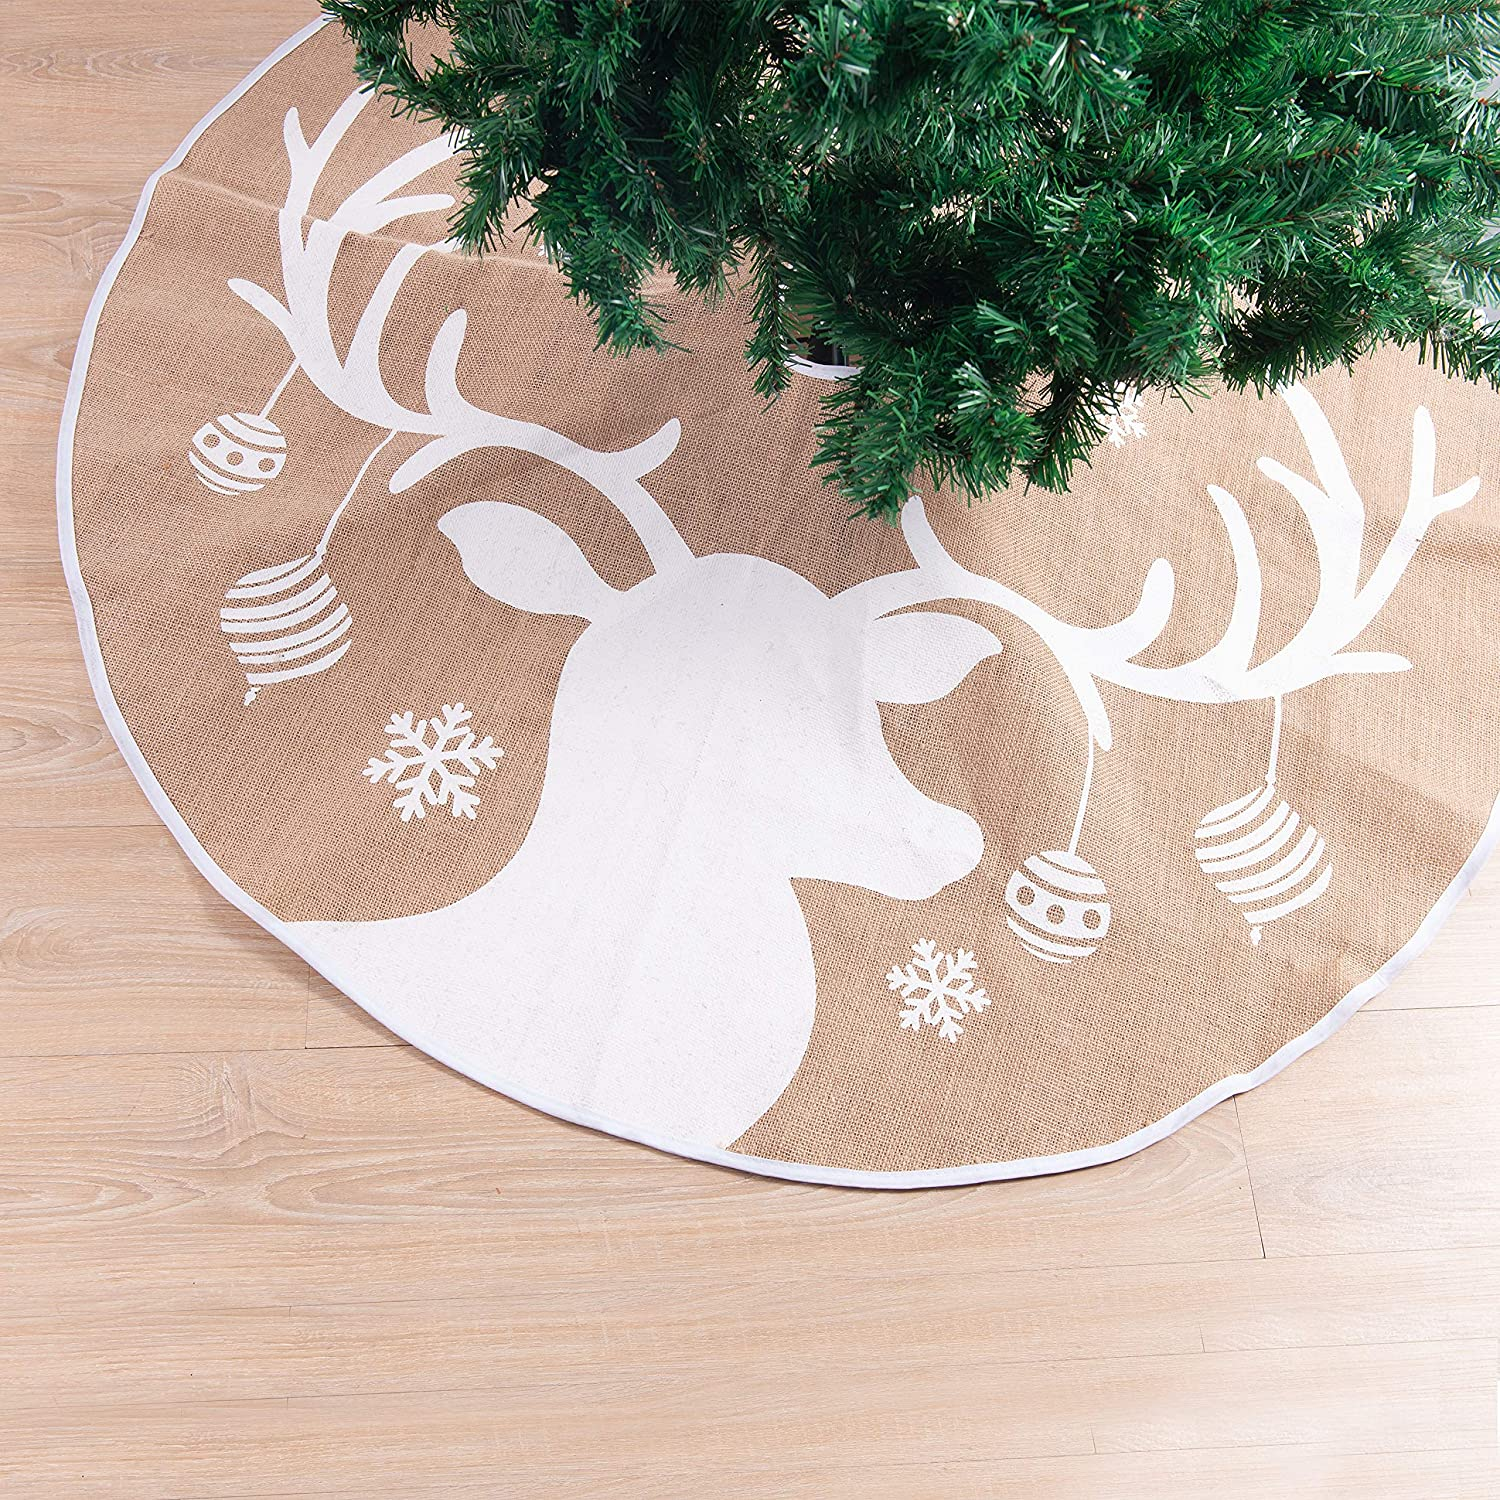 Joiedomi Christmas Tree Skirt with Reindeer Pattern, 48